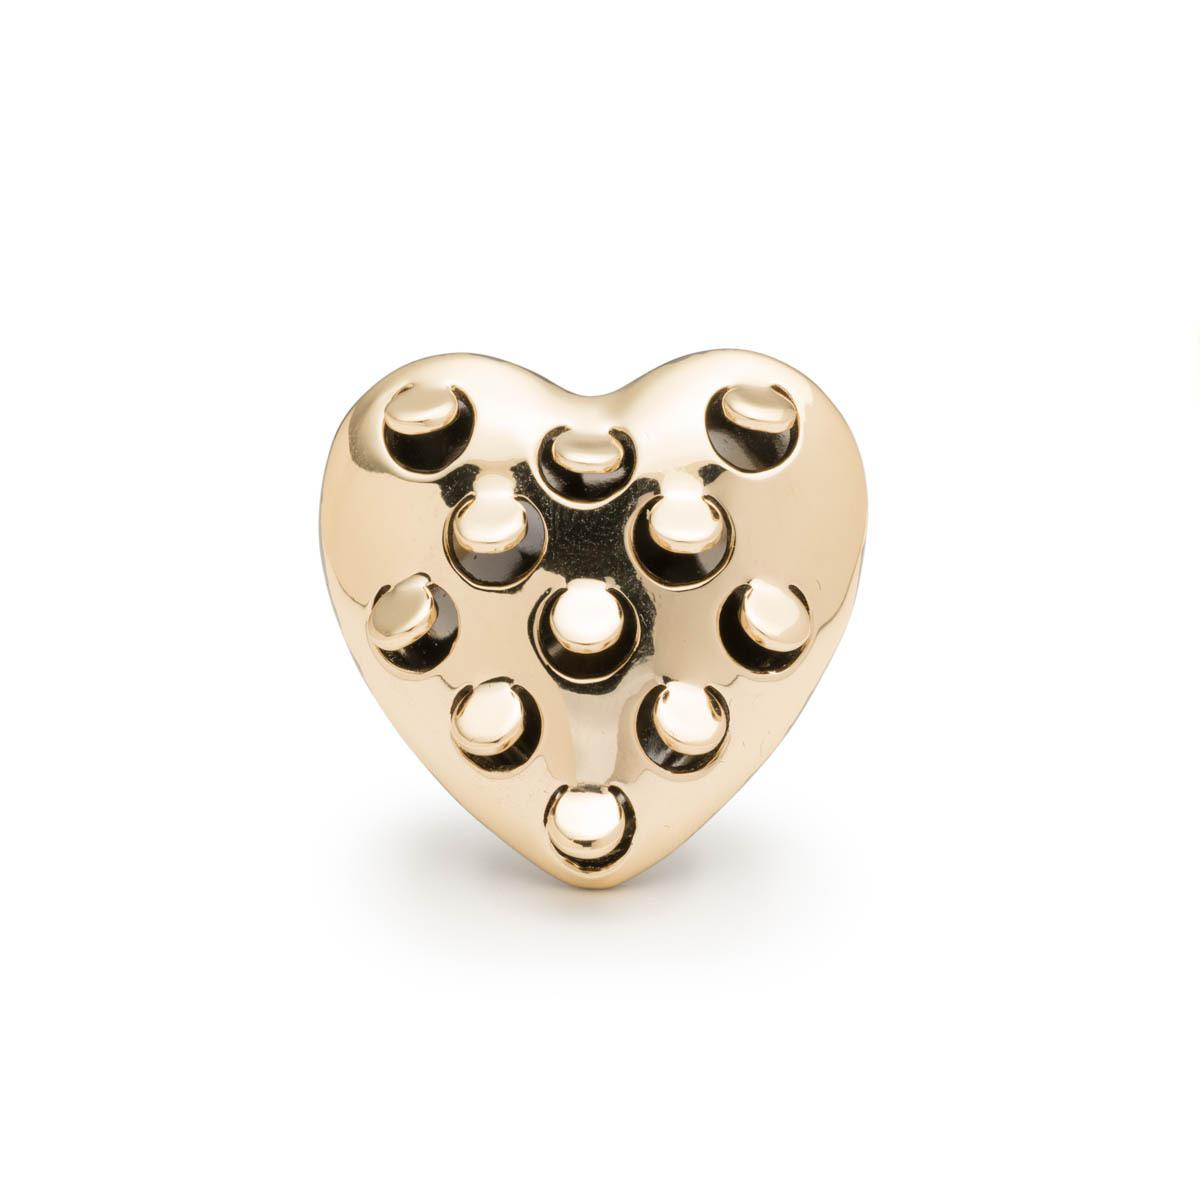 Alexis Bittar Grater Heart Cocktail Ring Nc9rmu9s